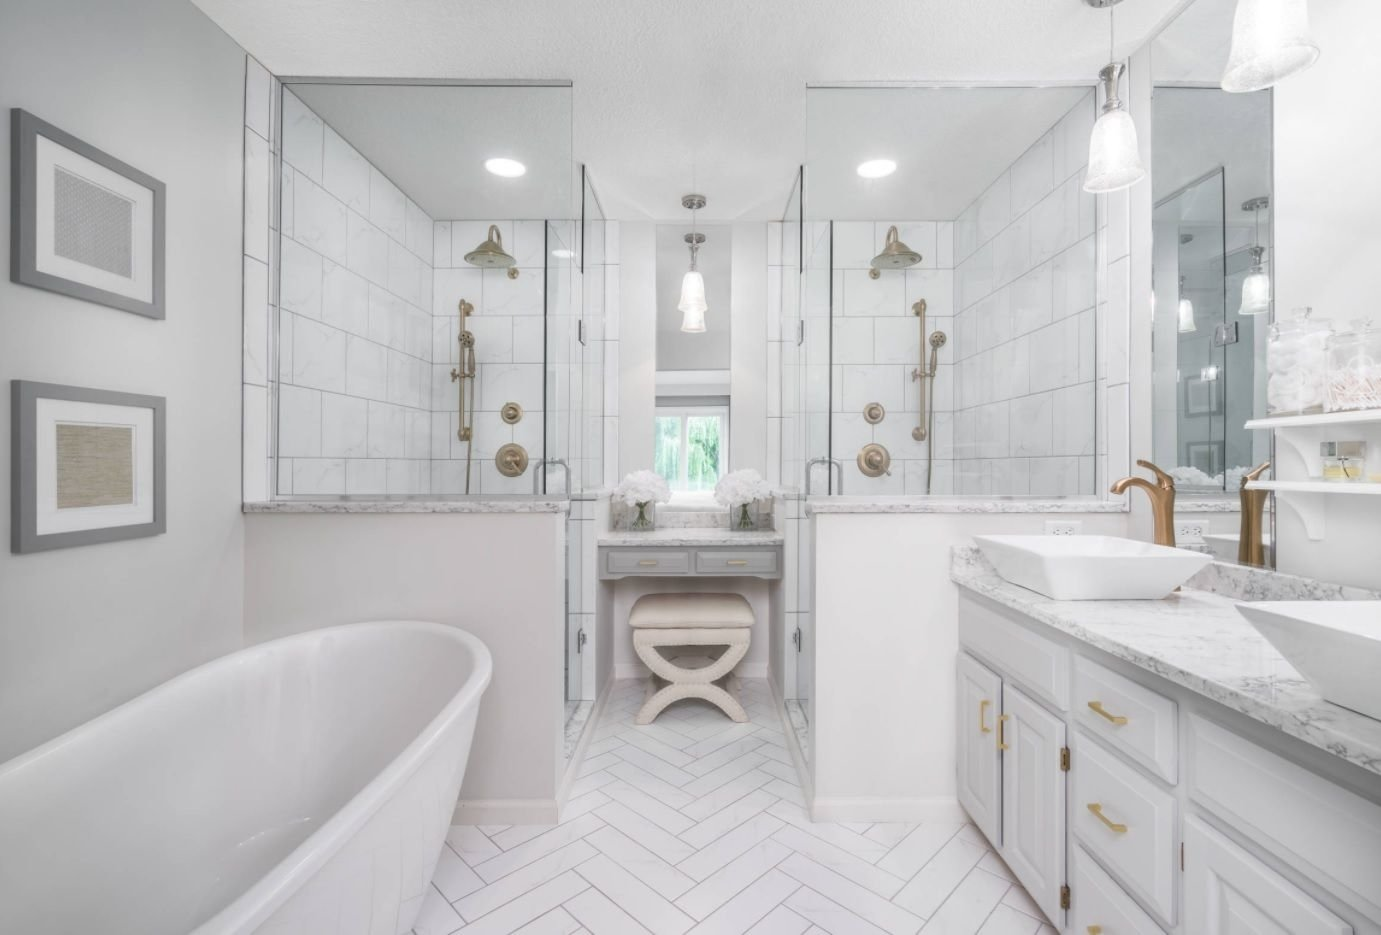 10 Most Recommended Jack And Jill Bathroom Ideas jack and jill bathroom interior design ideas small design ideas 1